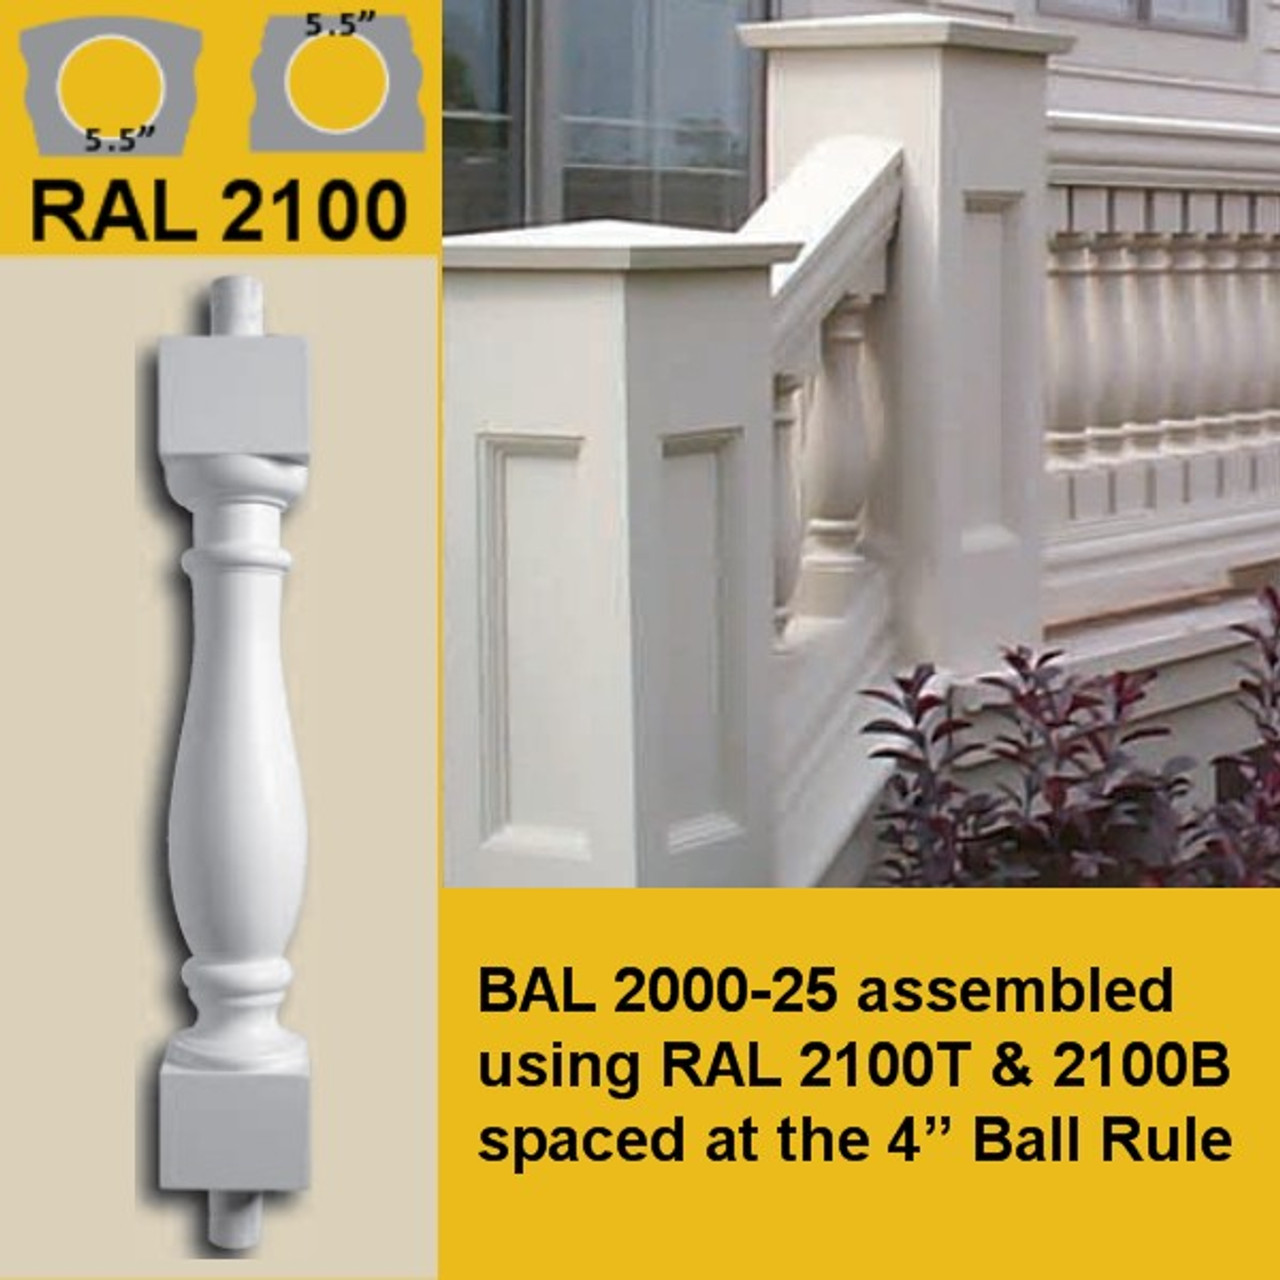 BAL2000-25 and RAL2100 Handrail